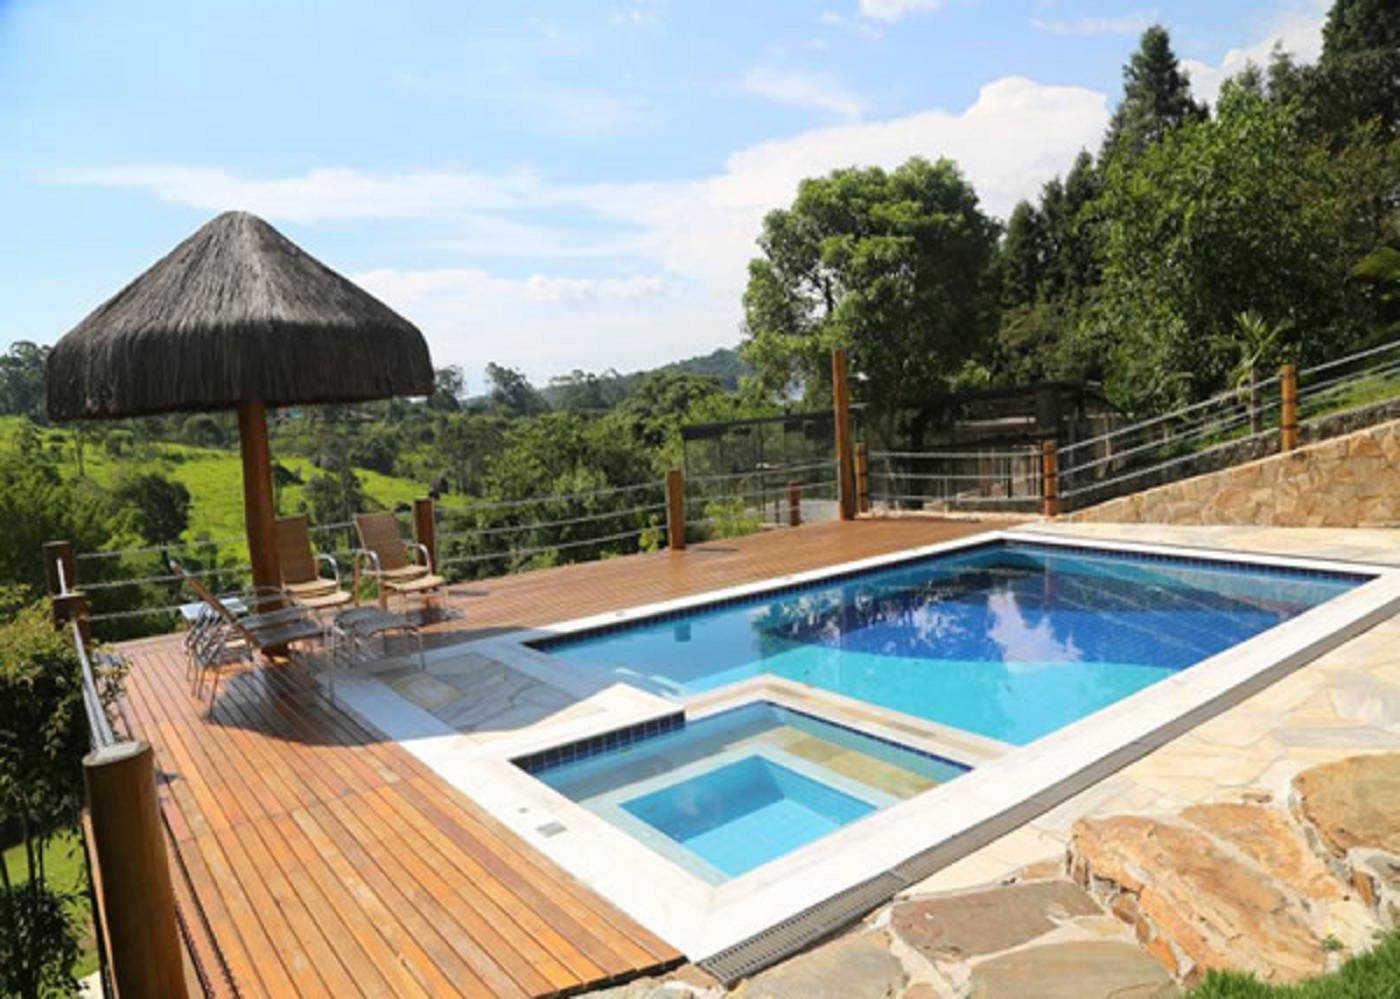 Private pool with 3 suites